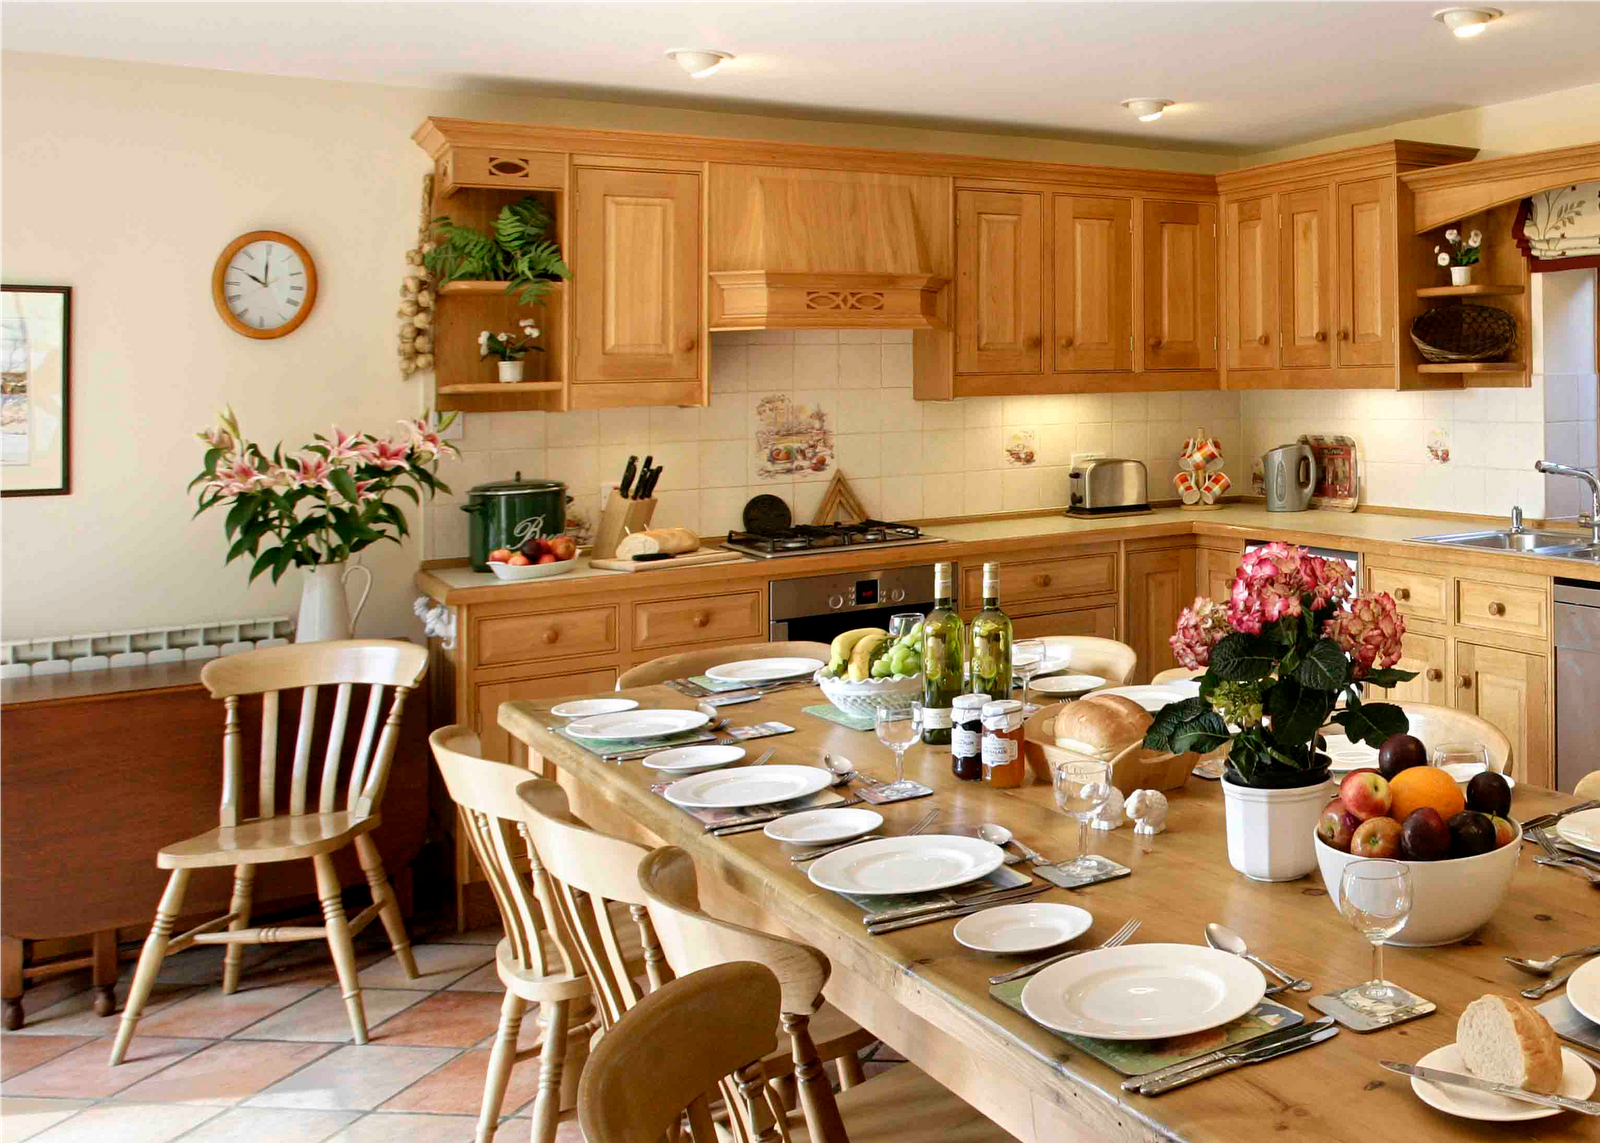 English country kitchen ideas room design ideas for Kitchen design decorating ideas